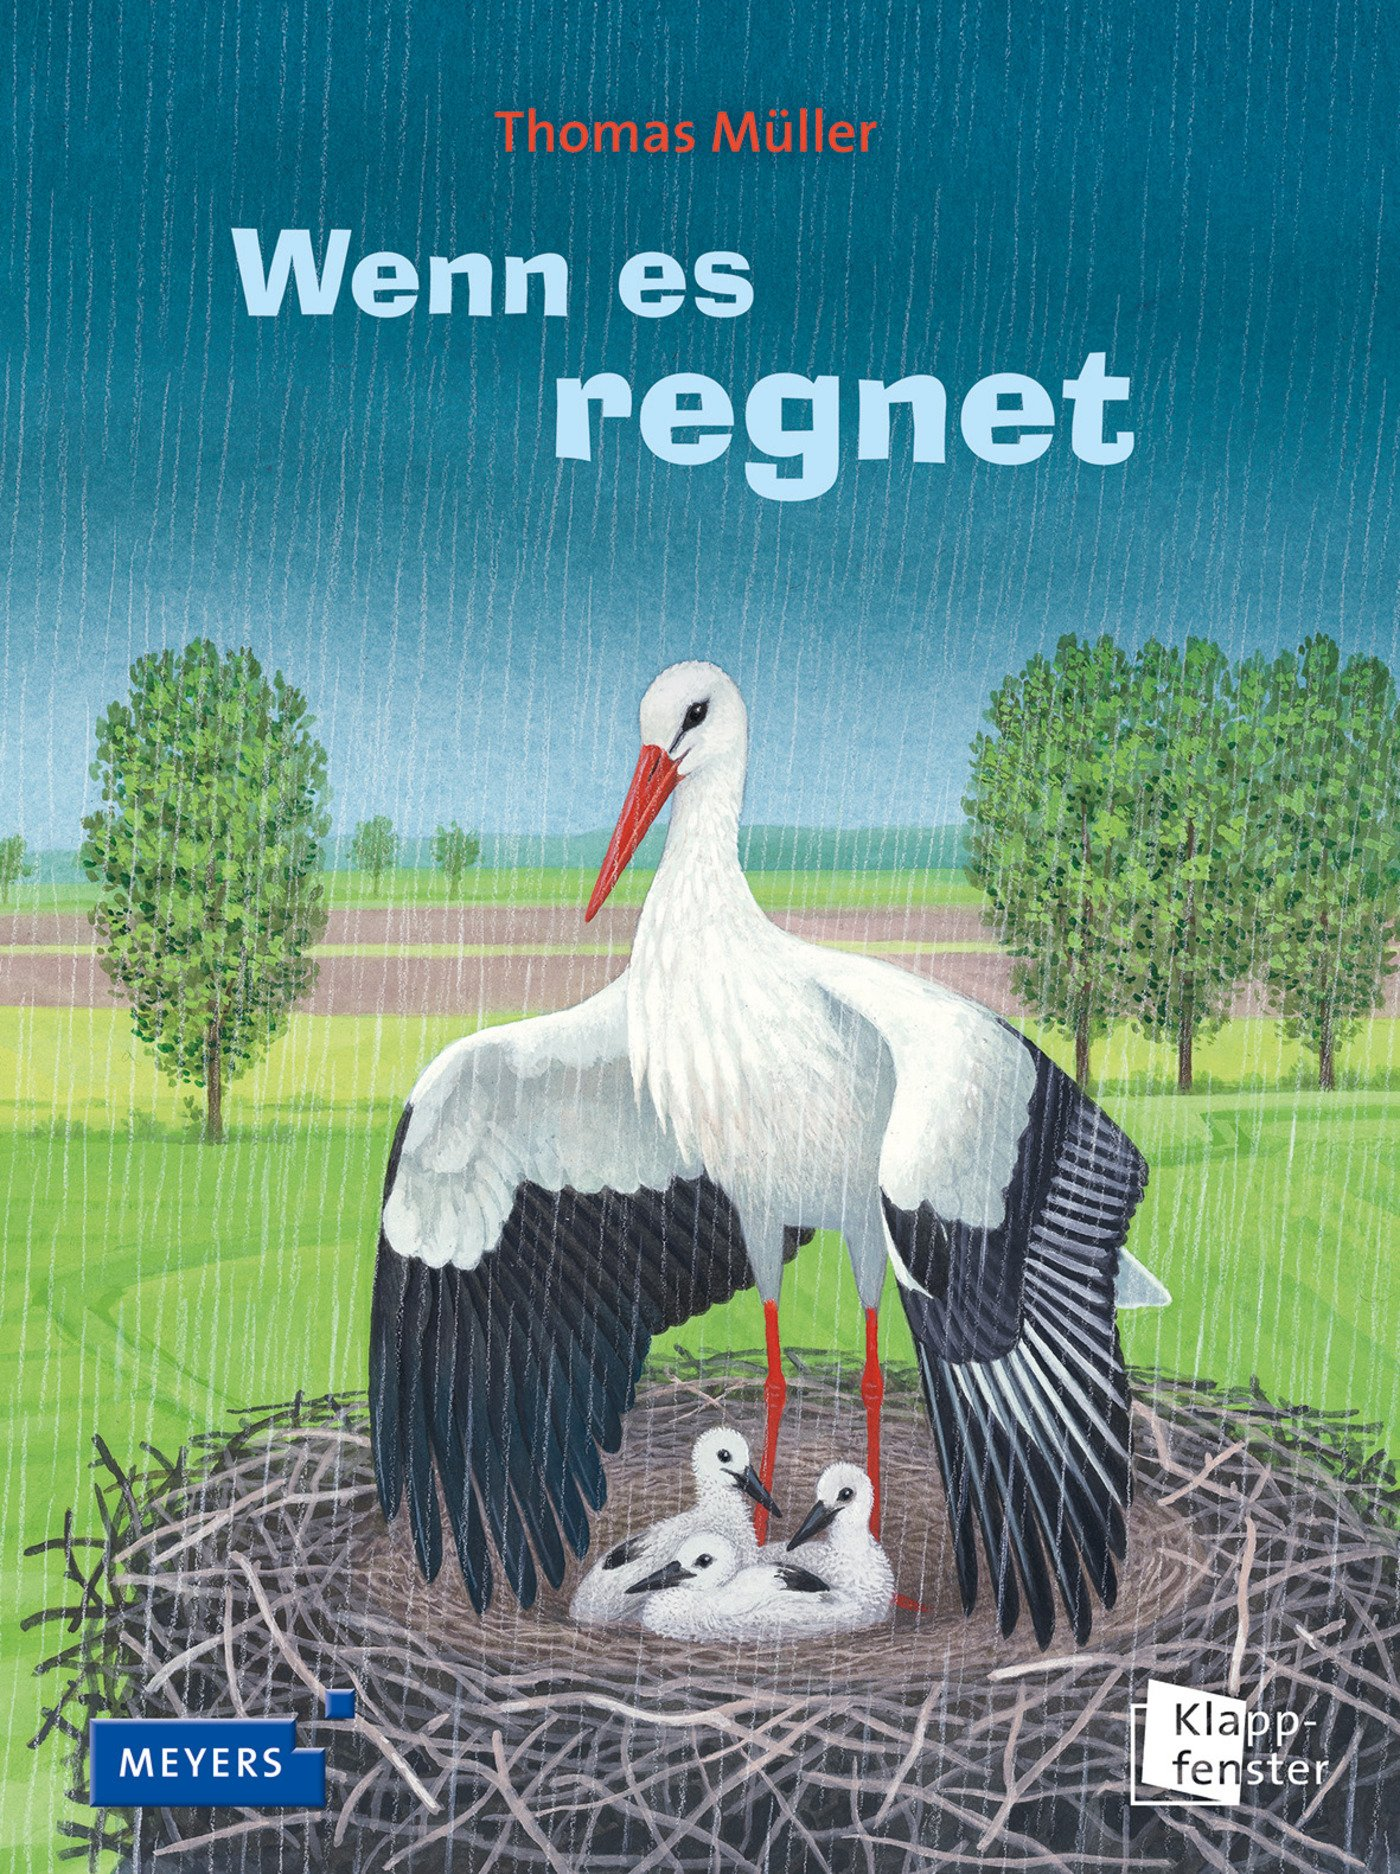 Wenn es regnet: Müller, Thomas: 9783411812462: Amazon.com: Books